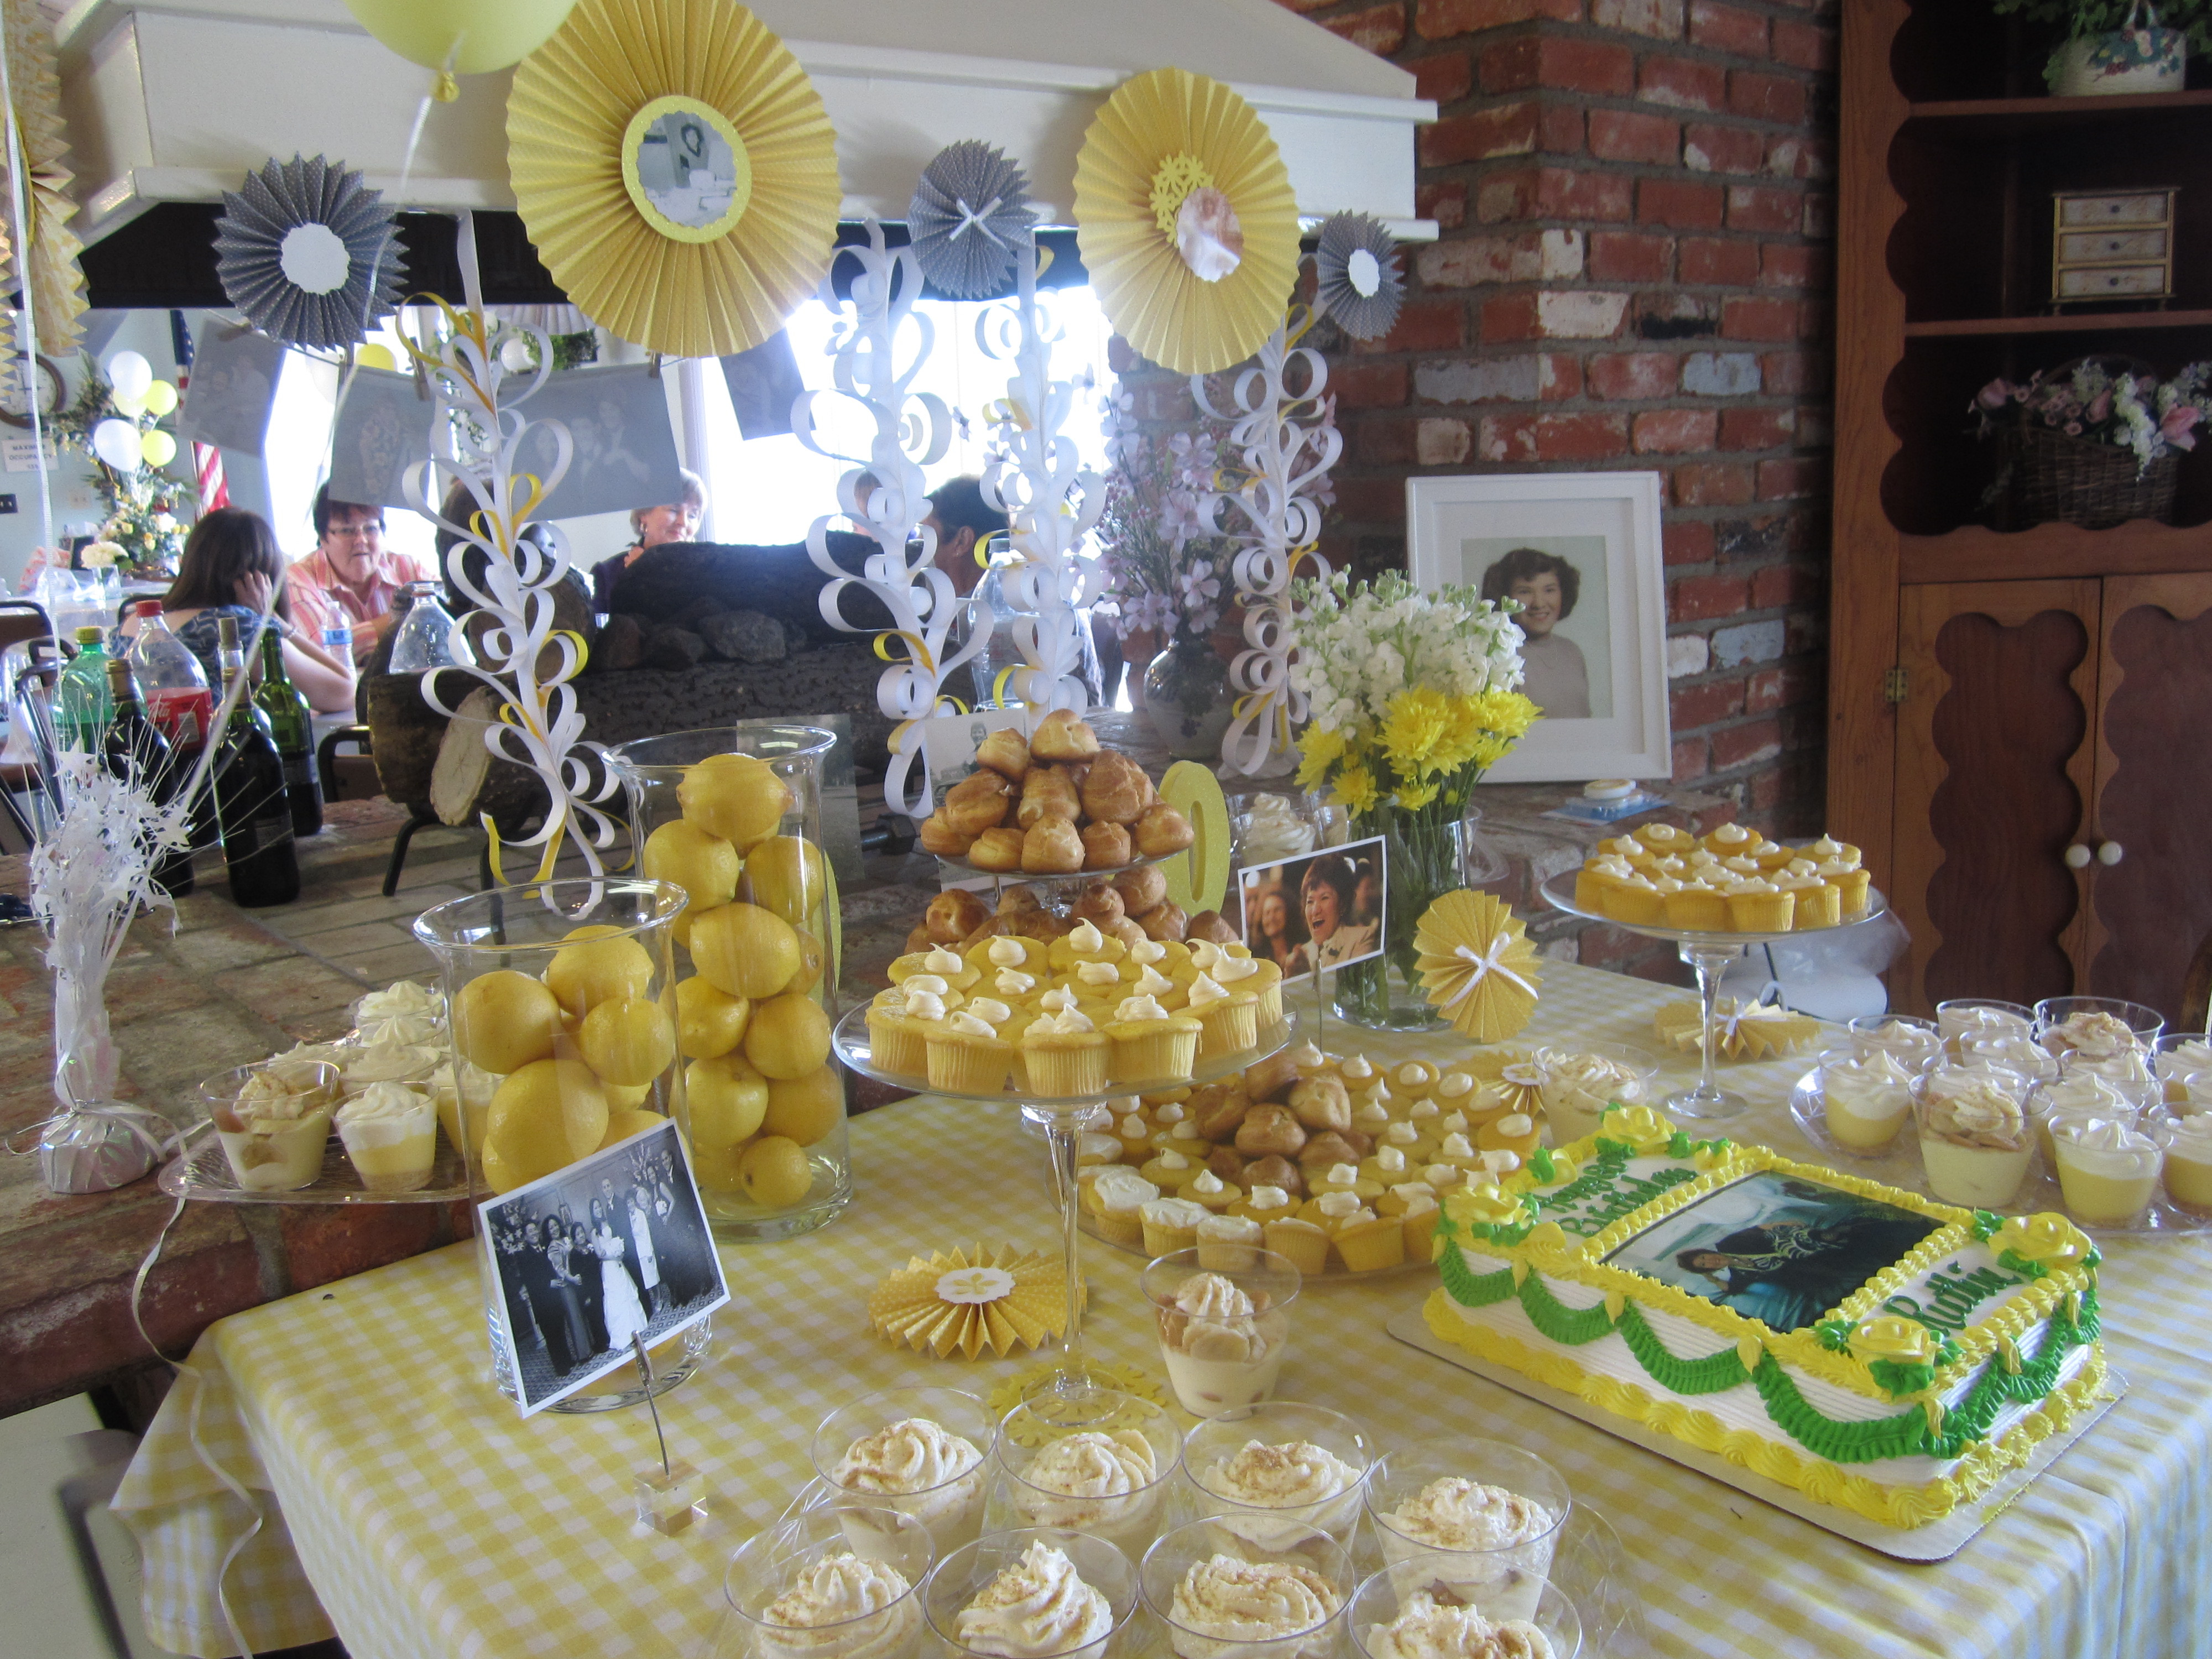 Best ideas about 80th Birthday Party Ideas For Grandma . Save or Pin 35 Memorable 80th Birthday Party Ideas Now.